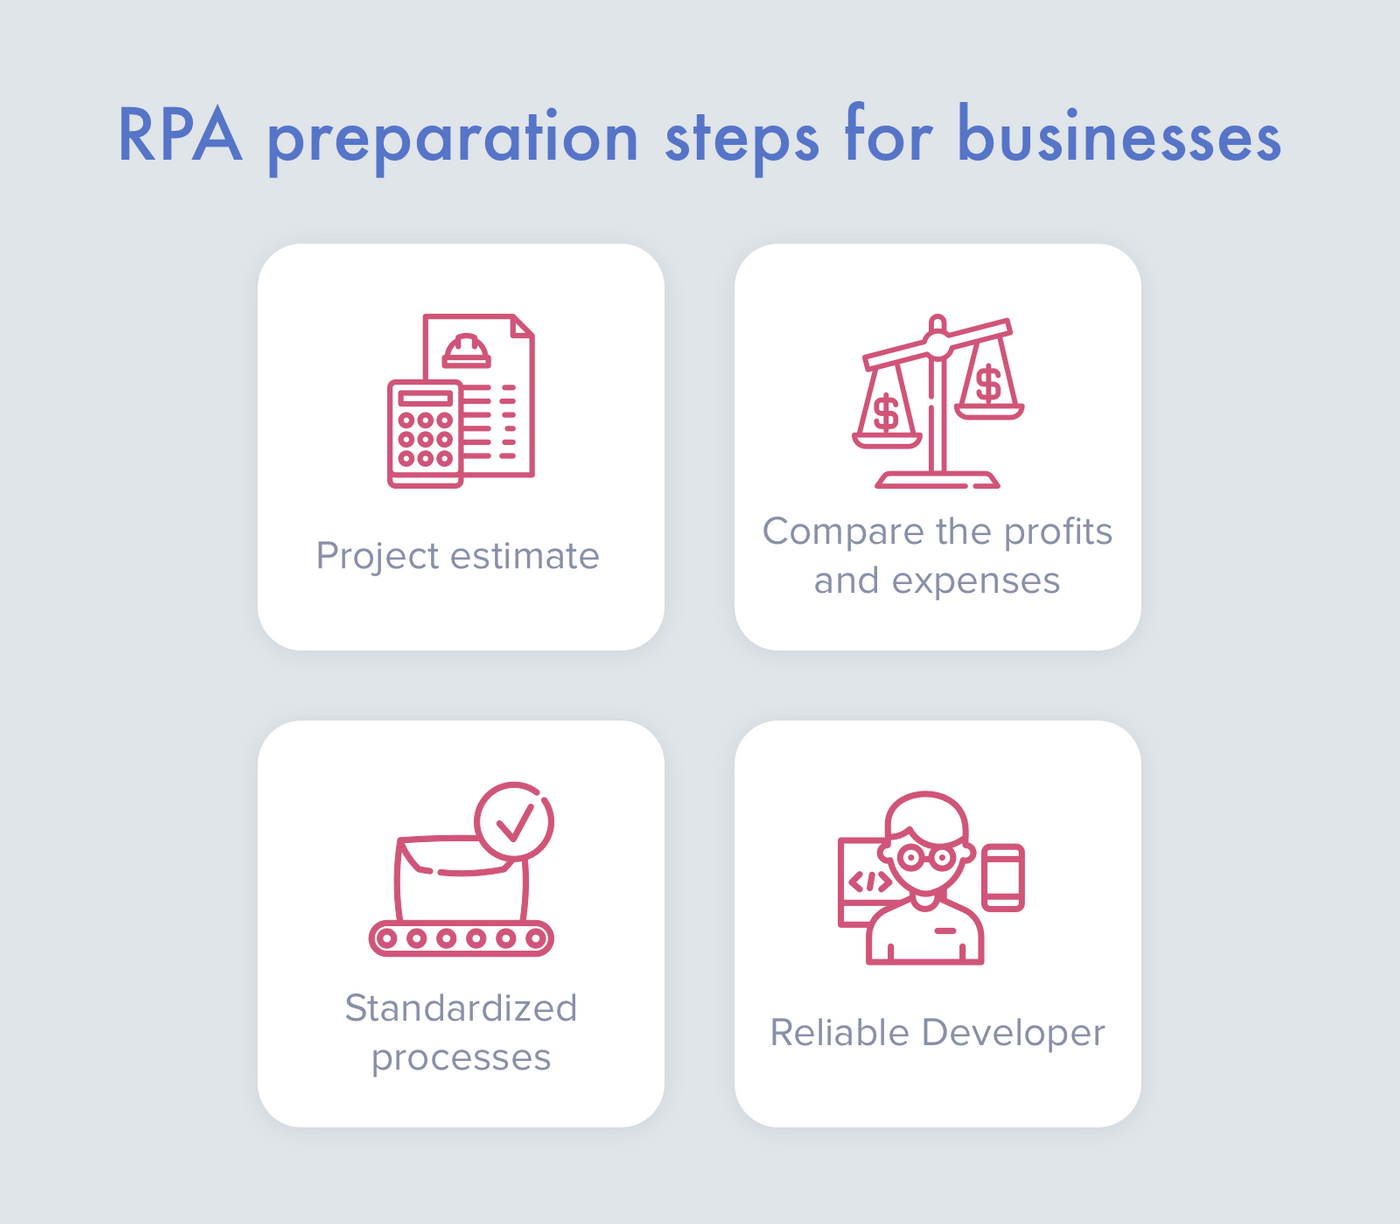 How to adopt RPA?